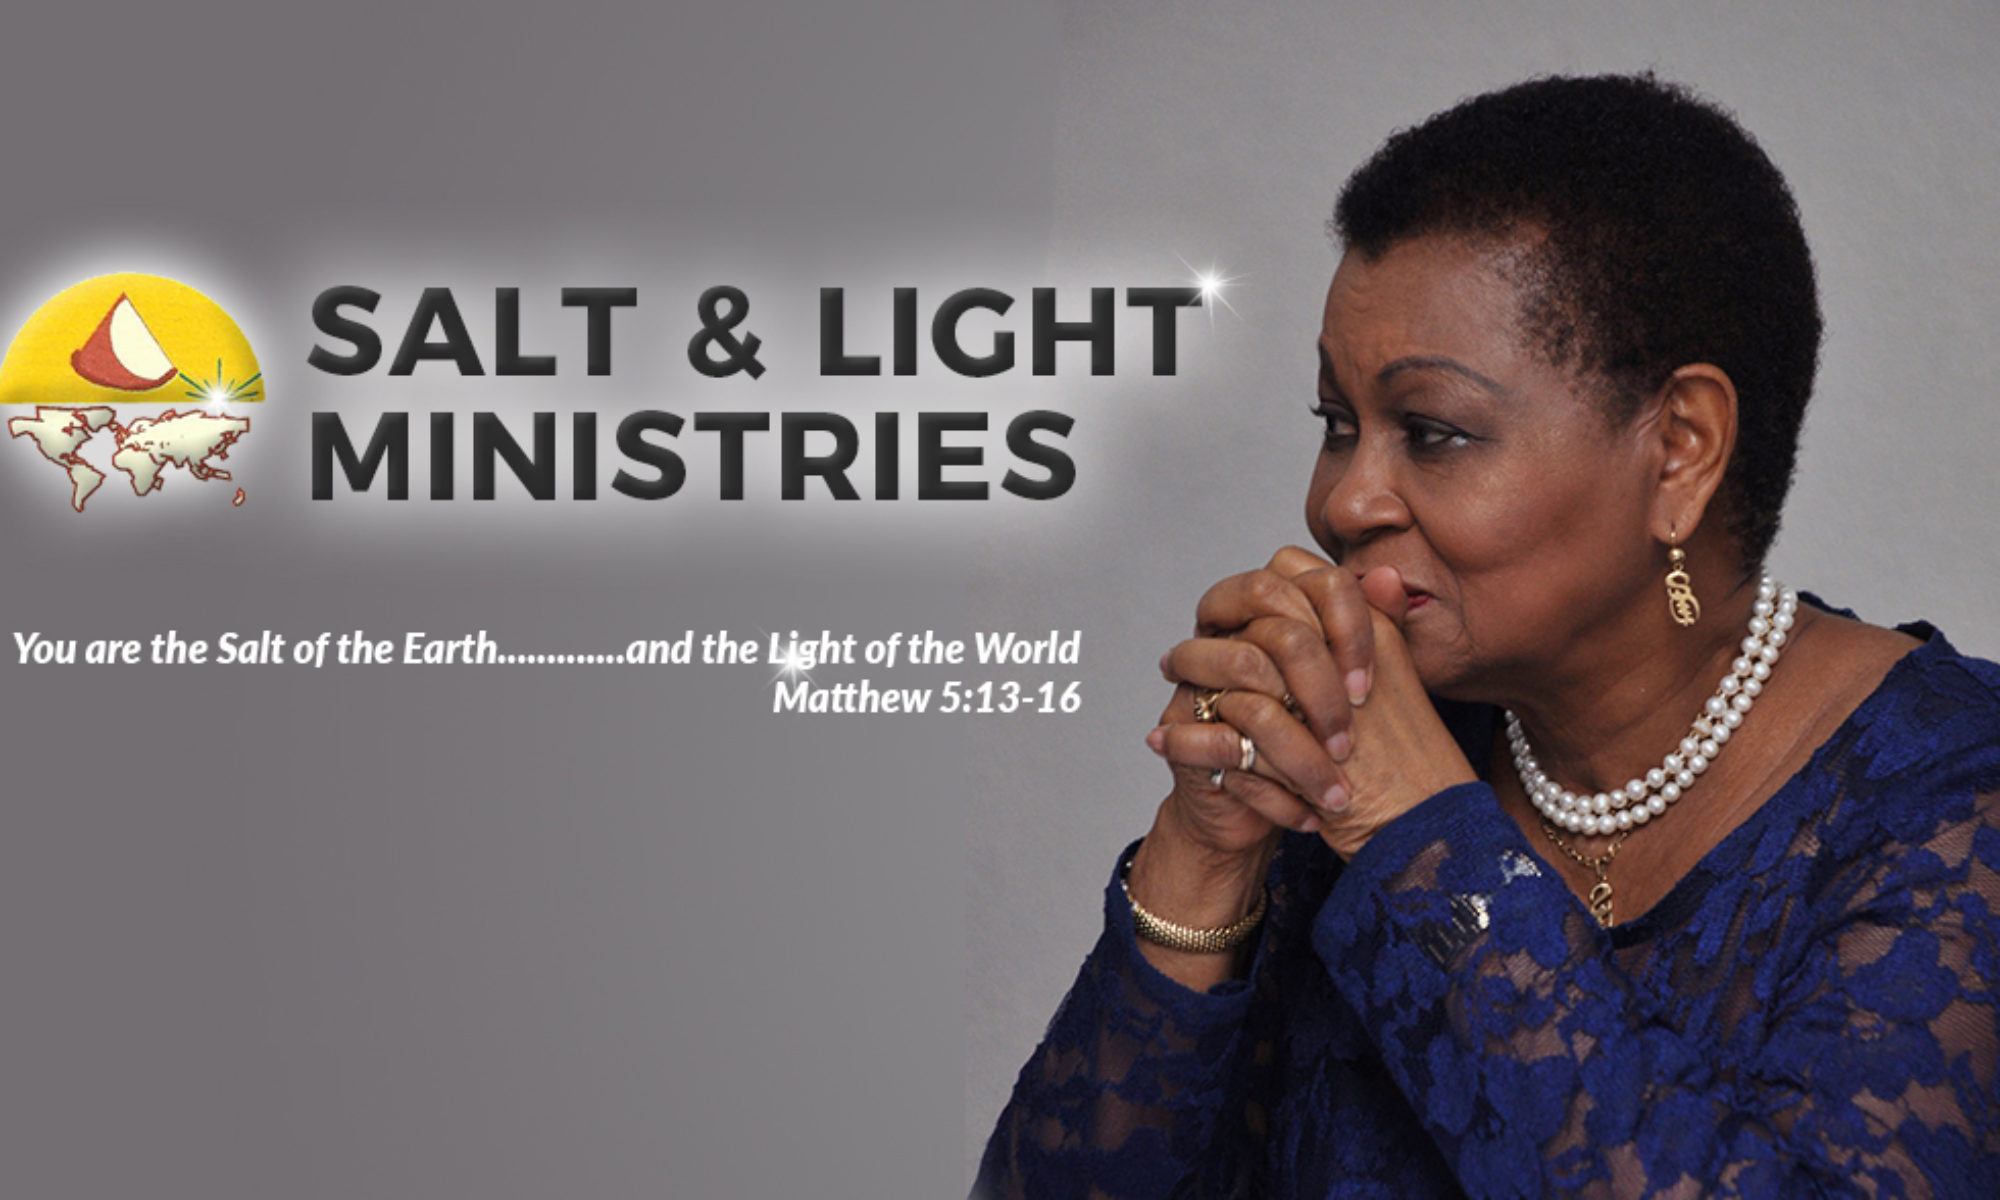 Salt and Light Ministries